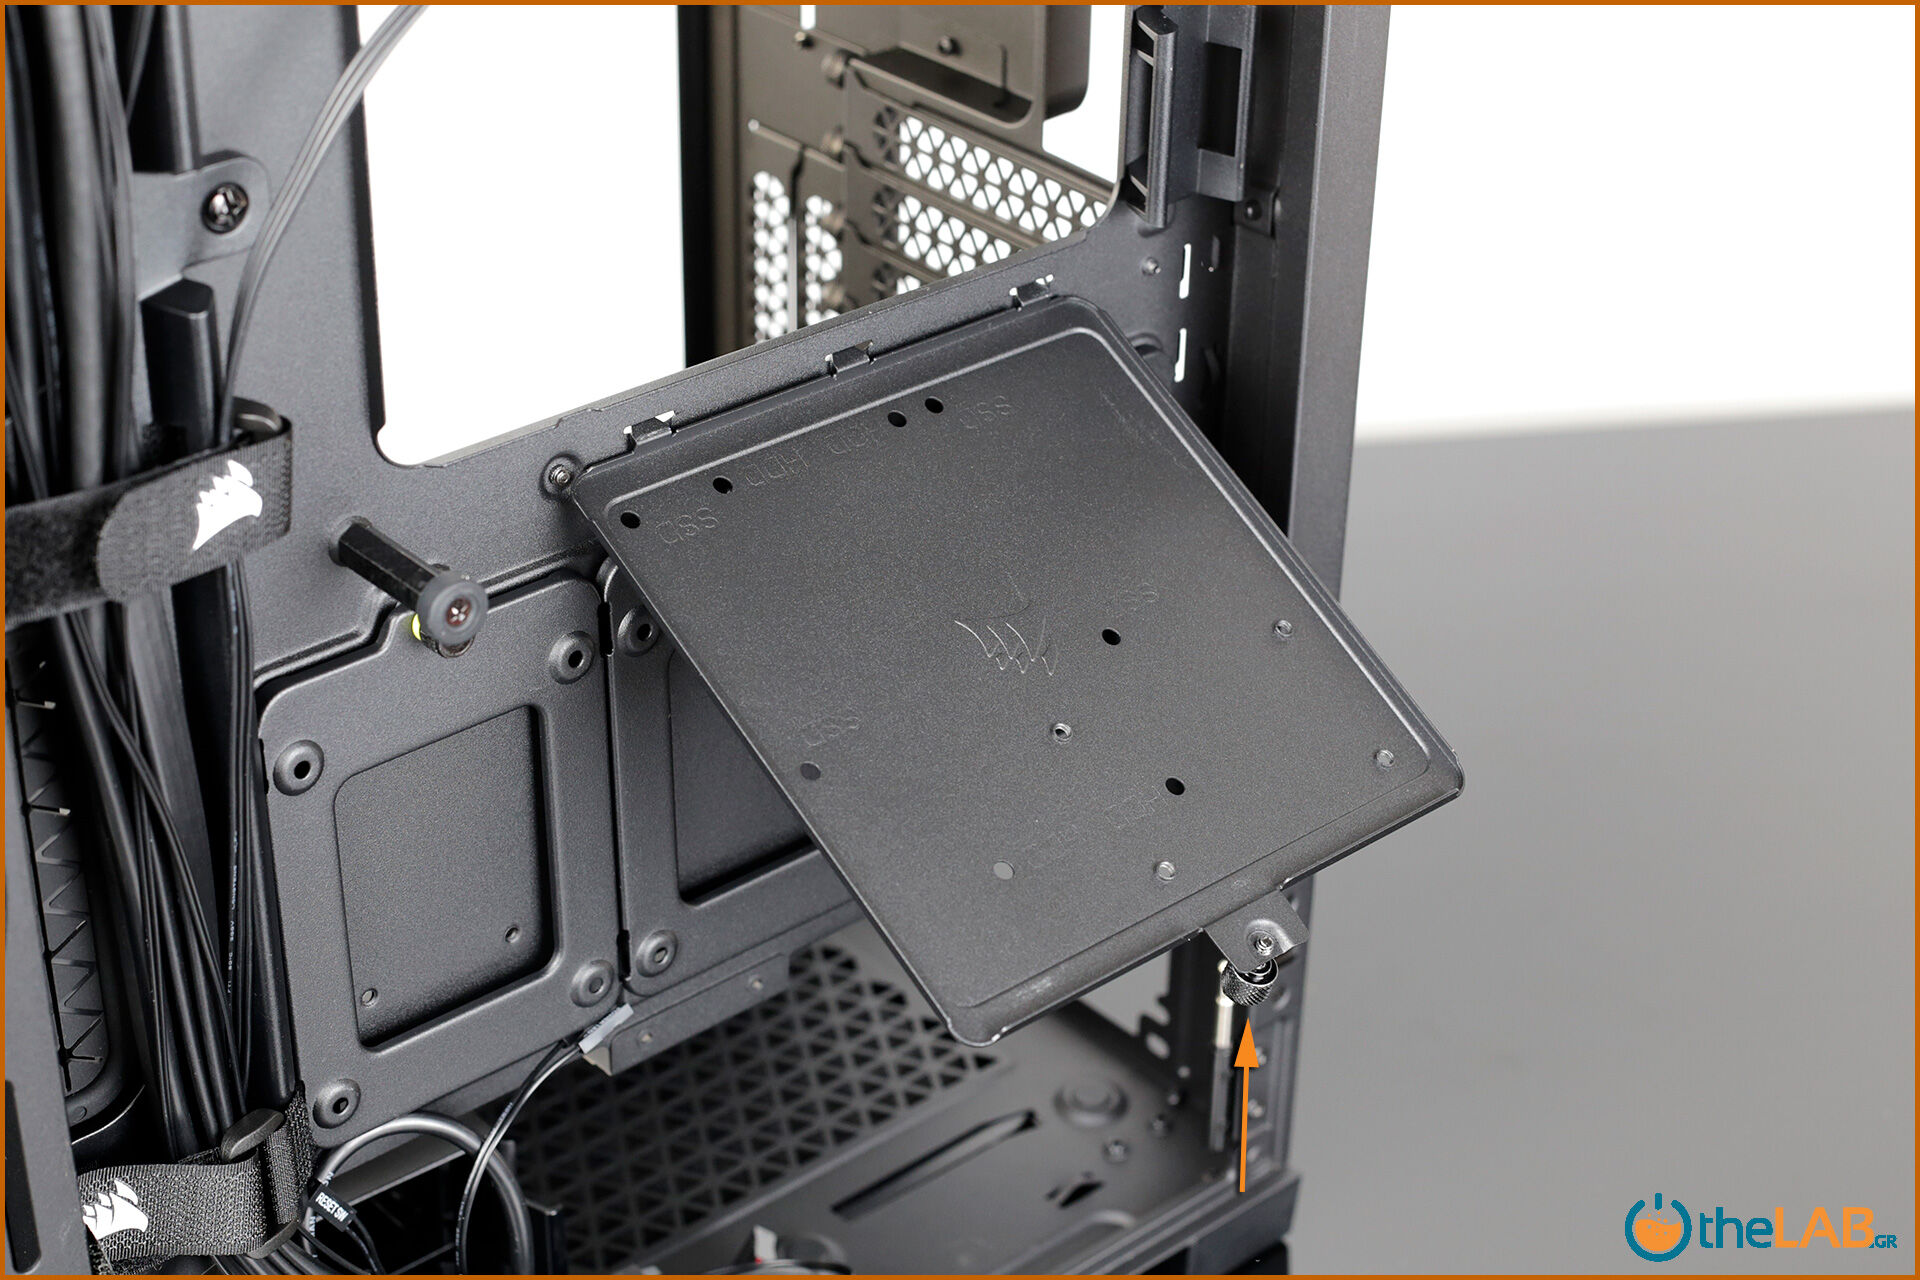 Corsair_icue_5000D__case_smart_exterior_interior_mid_tower_gaming_case_smart_review_image675.jpg